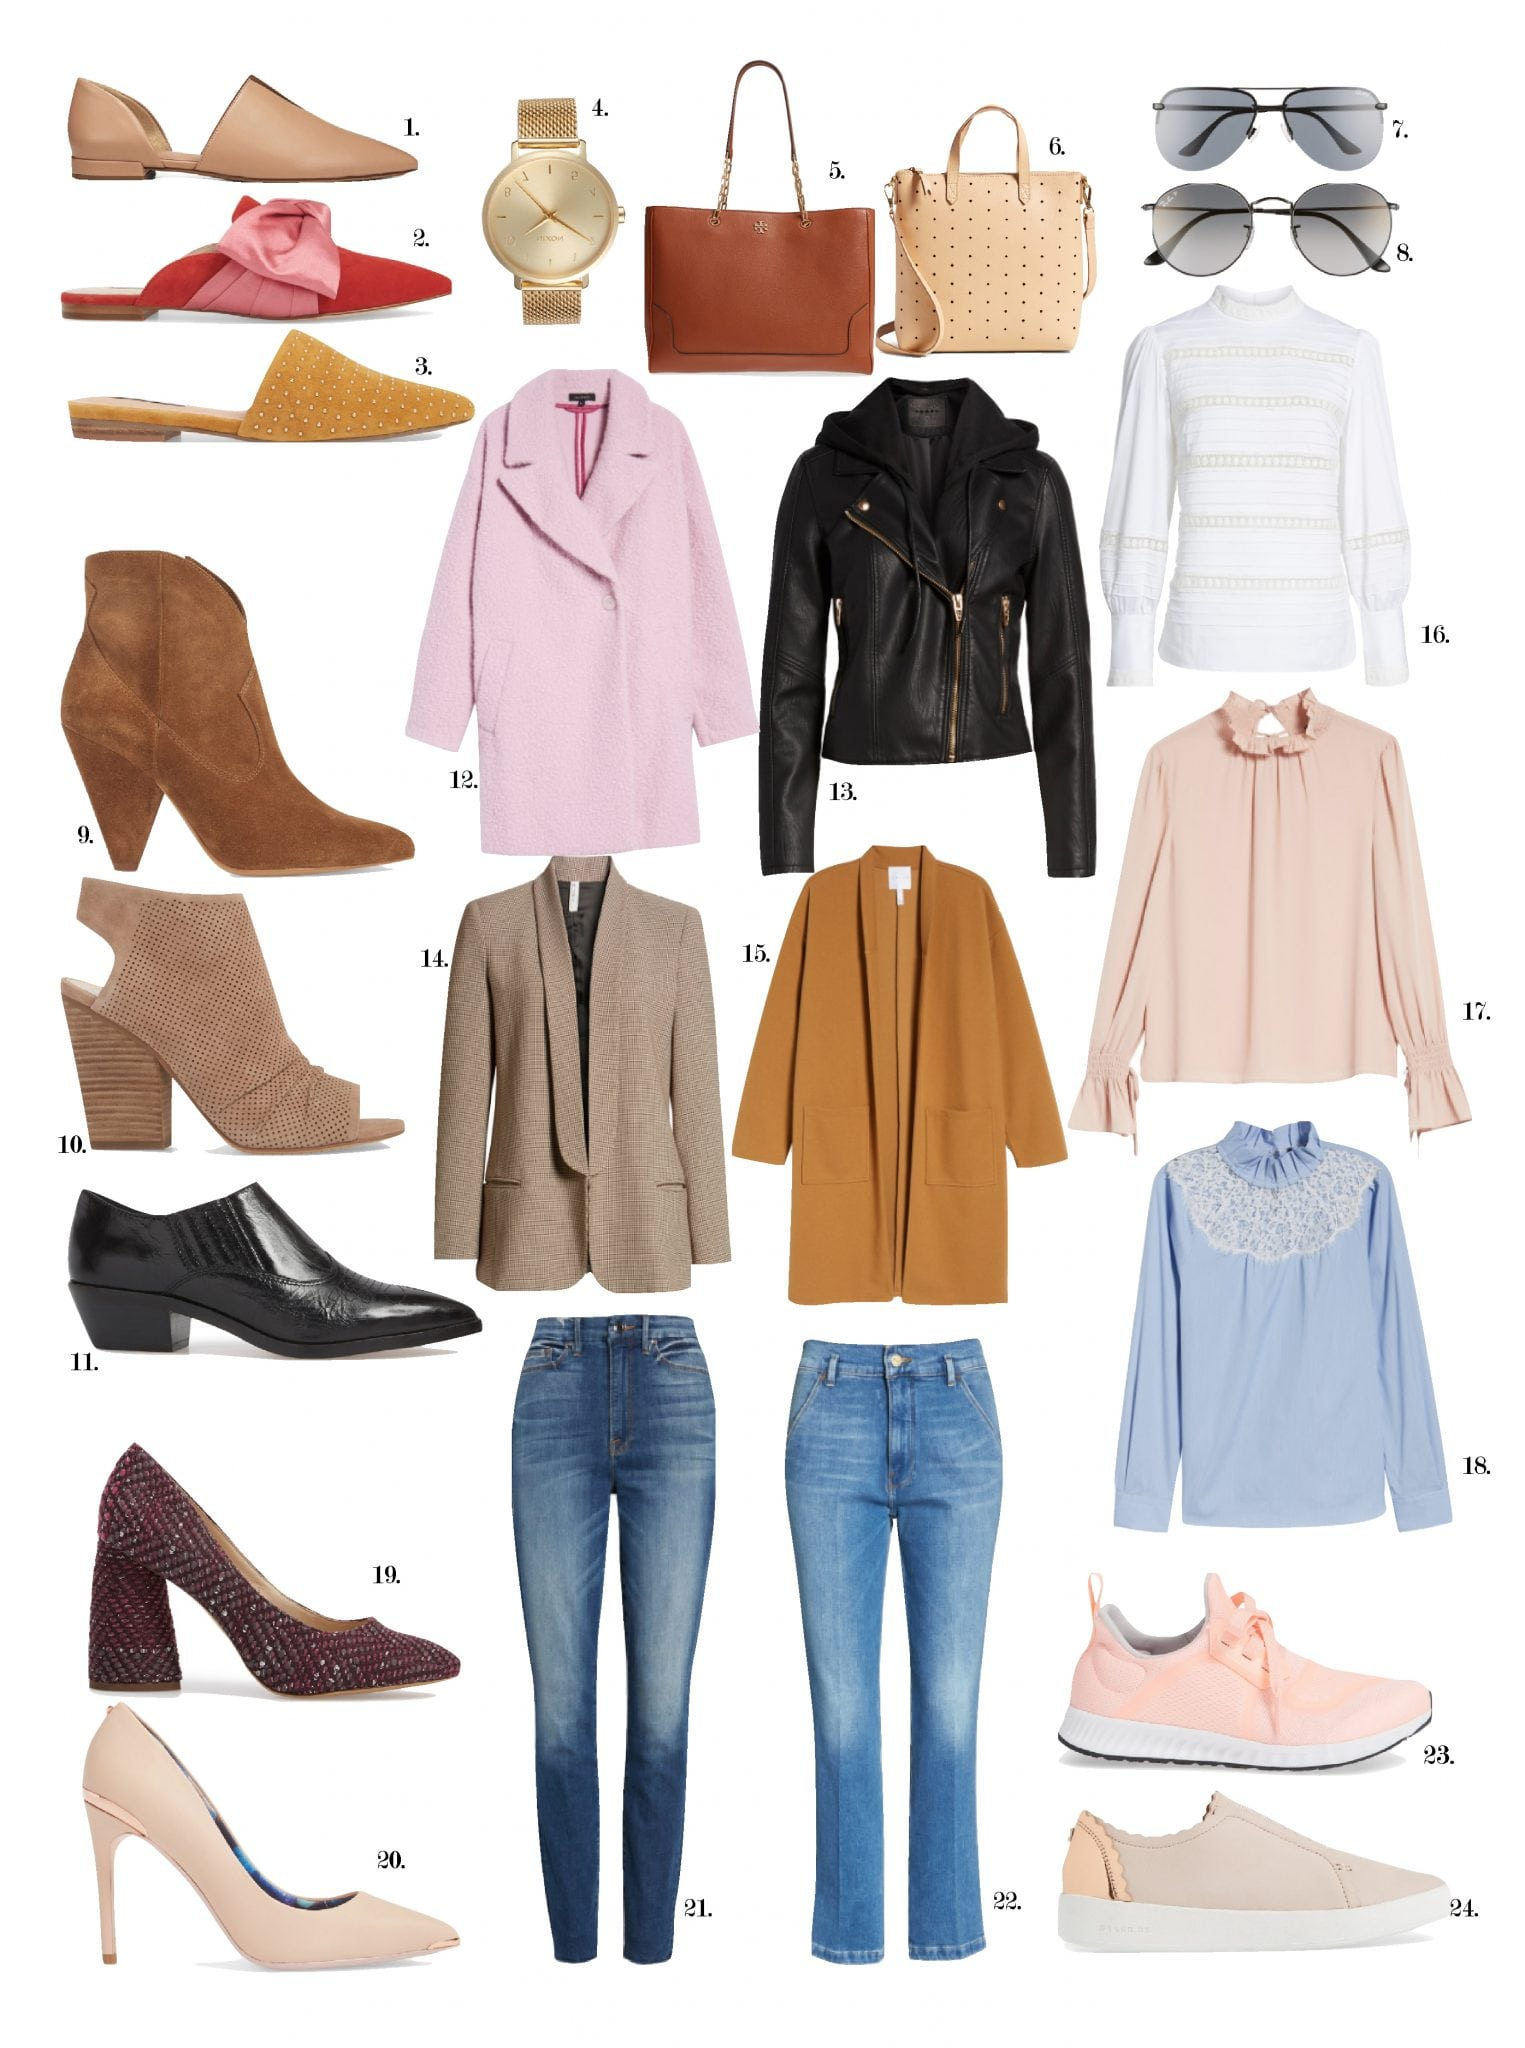 f50f67e2d2f BEST OF THE NORDSTROM ANNIVERSARY SALE 2018 + GIVEAWAY